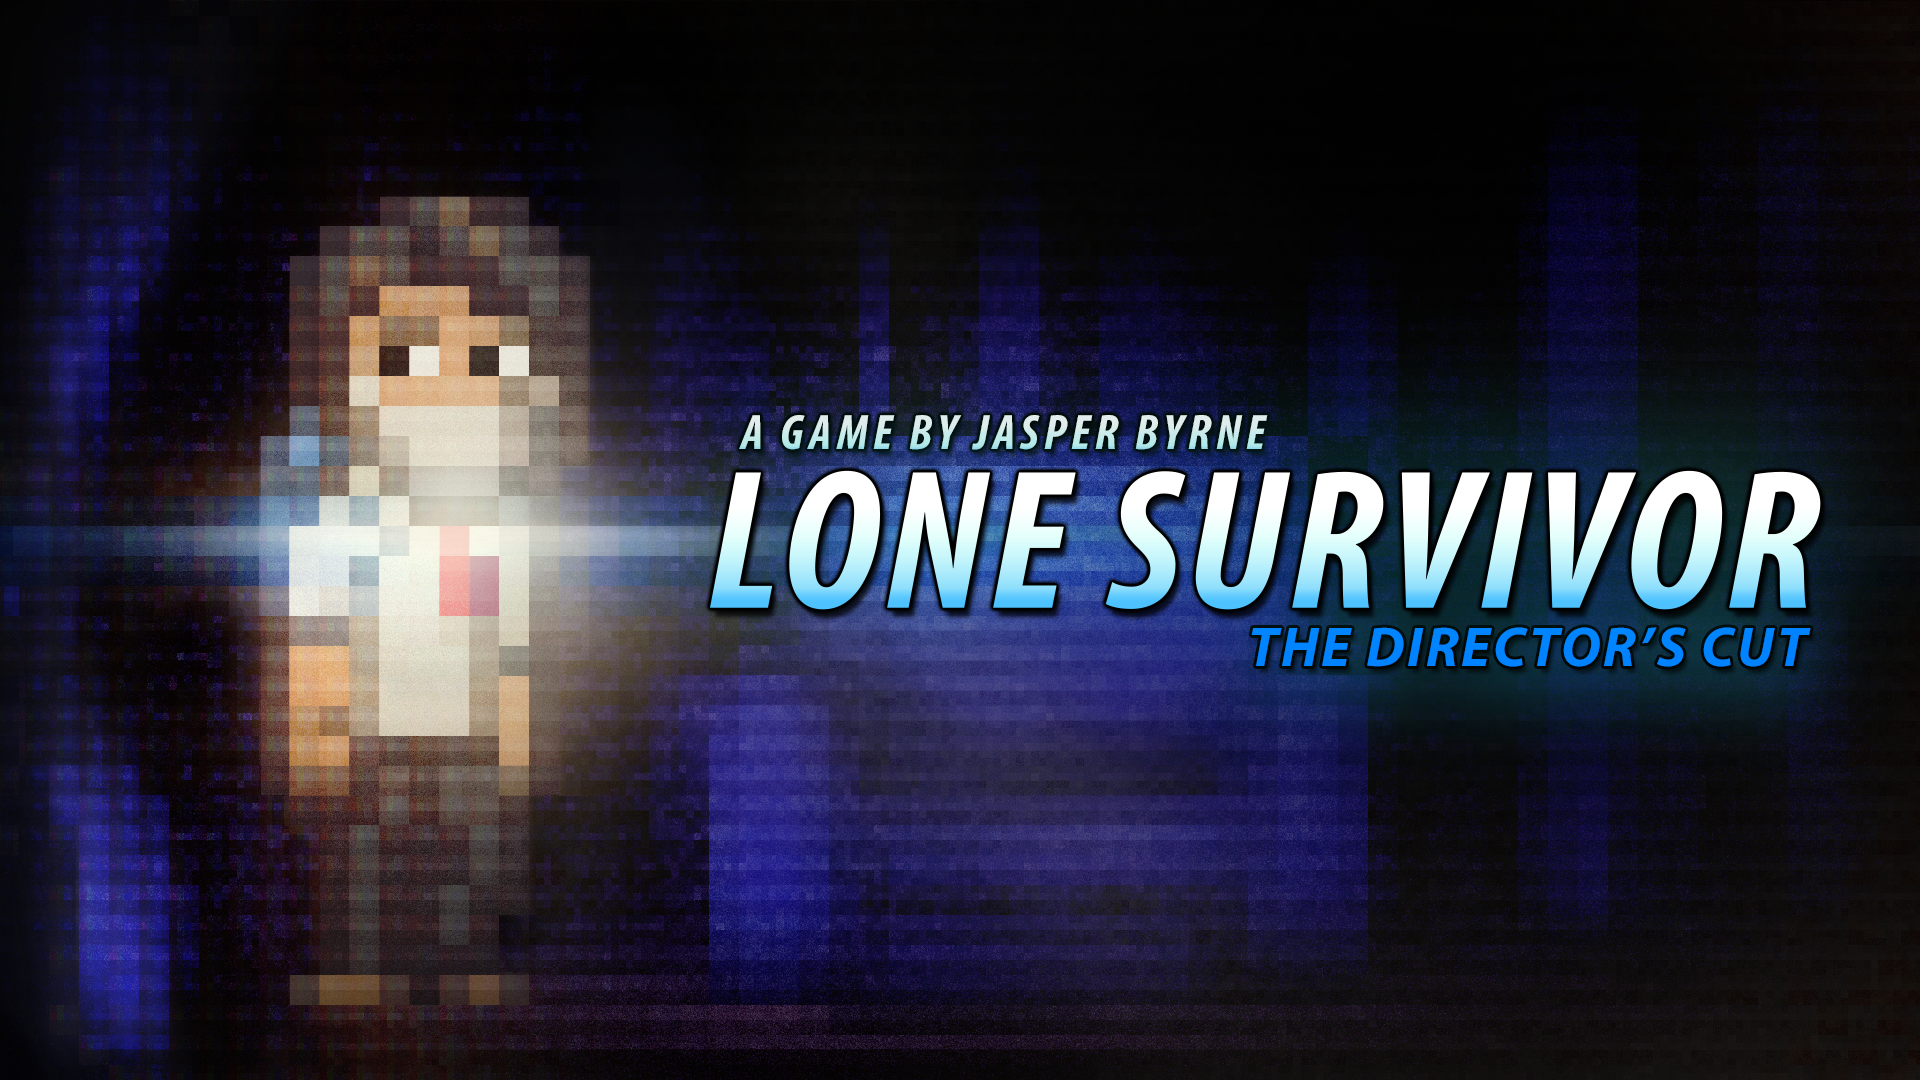 Lone Survivor (Playstation)  Peaceful Man